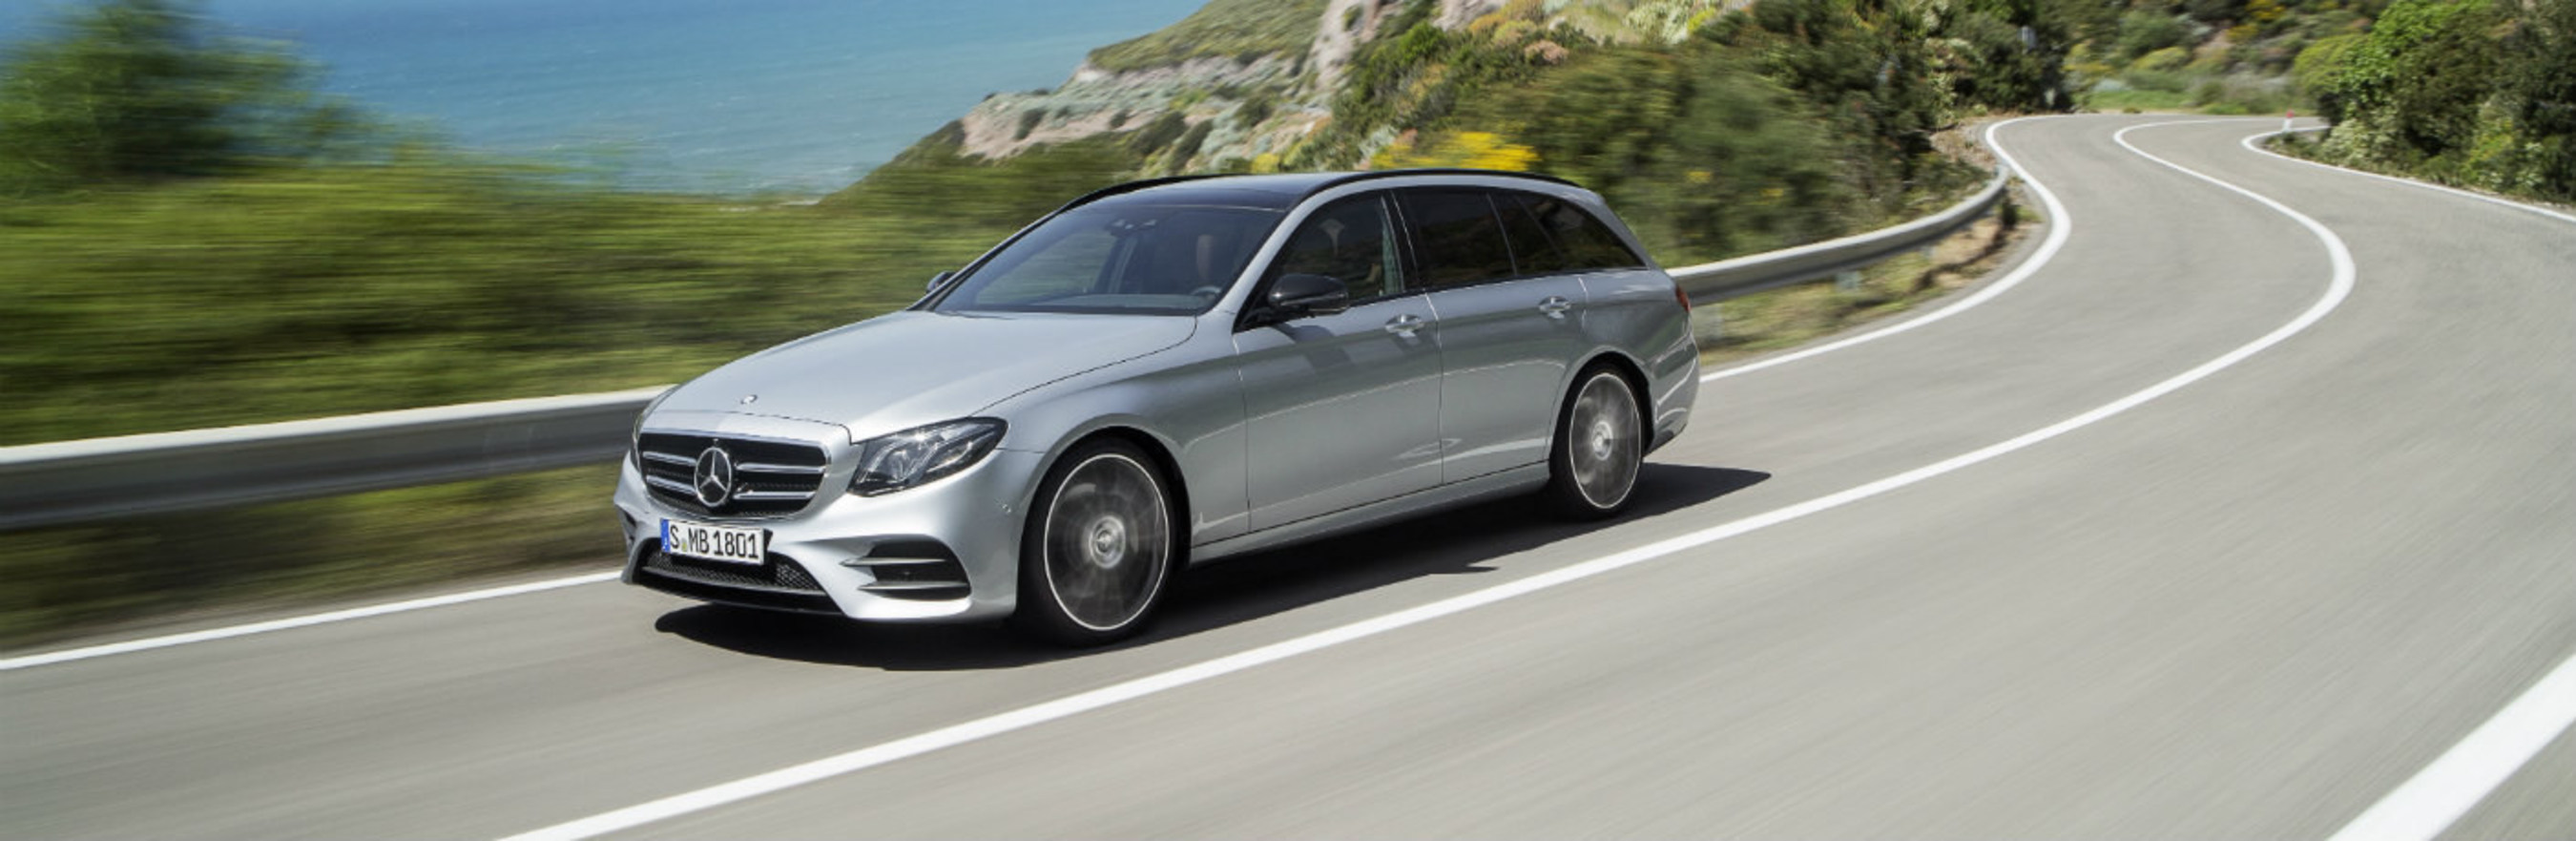 Redesigned Mercedes-Benz E-Class Wagon provides unmatched versatility